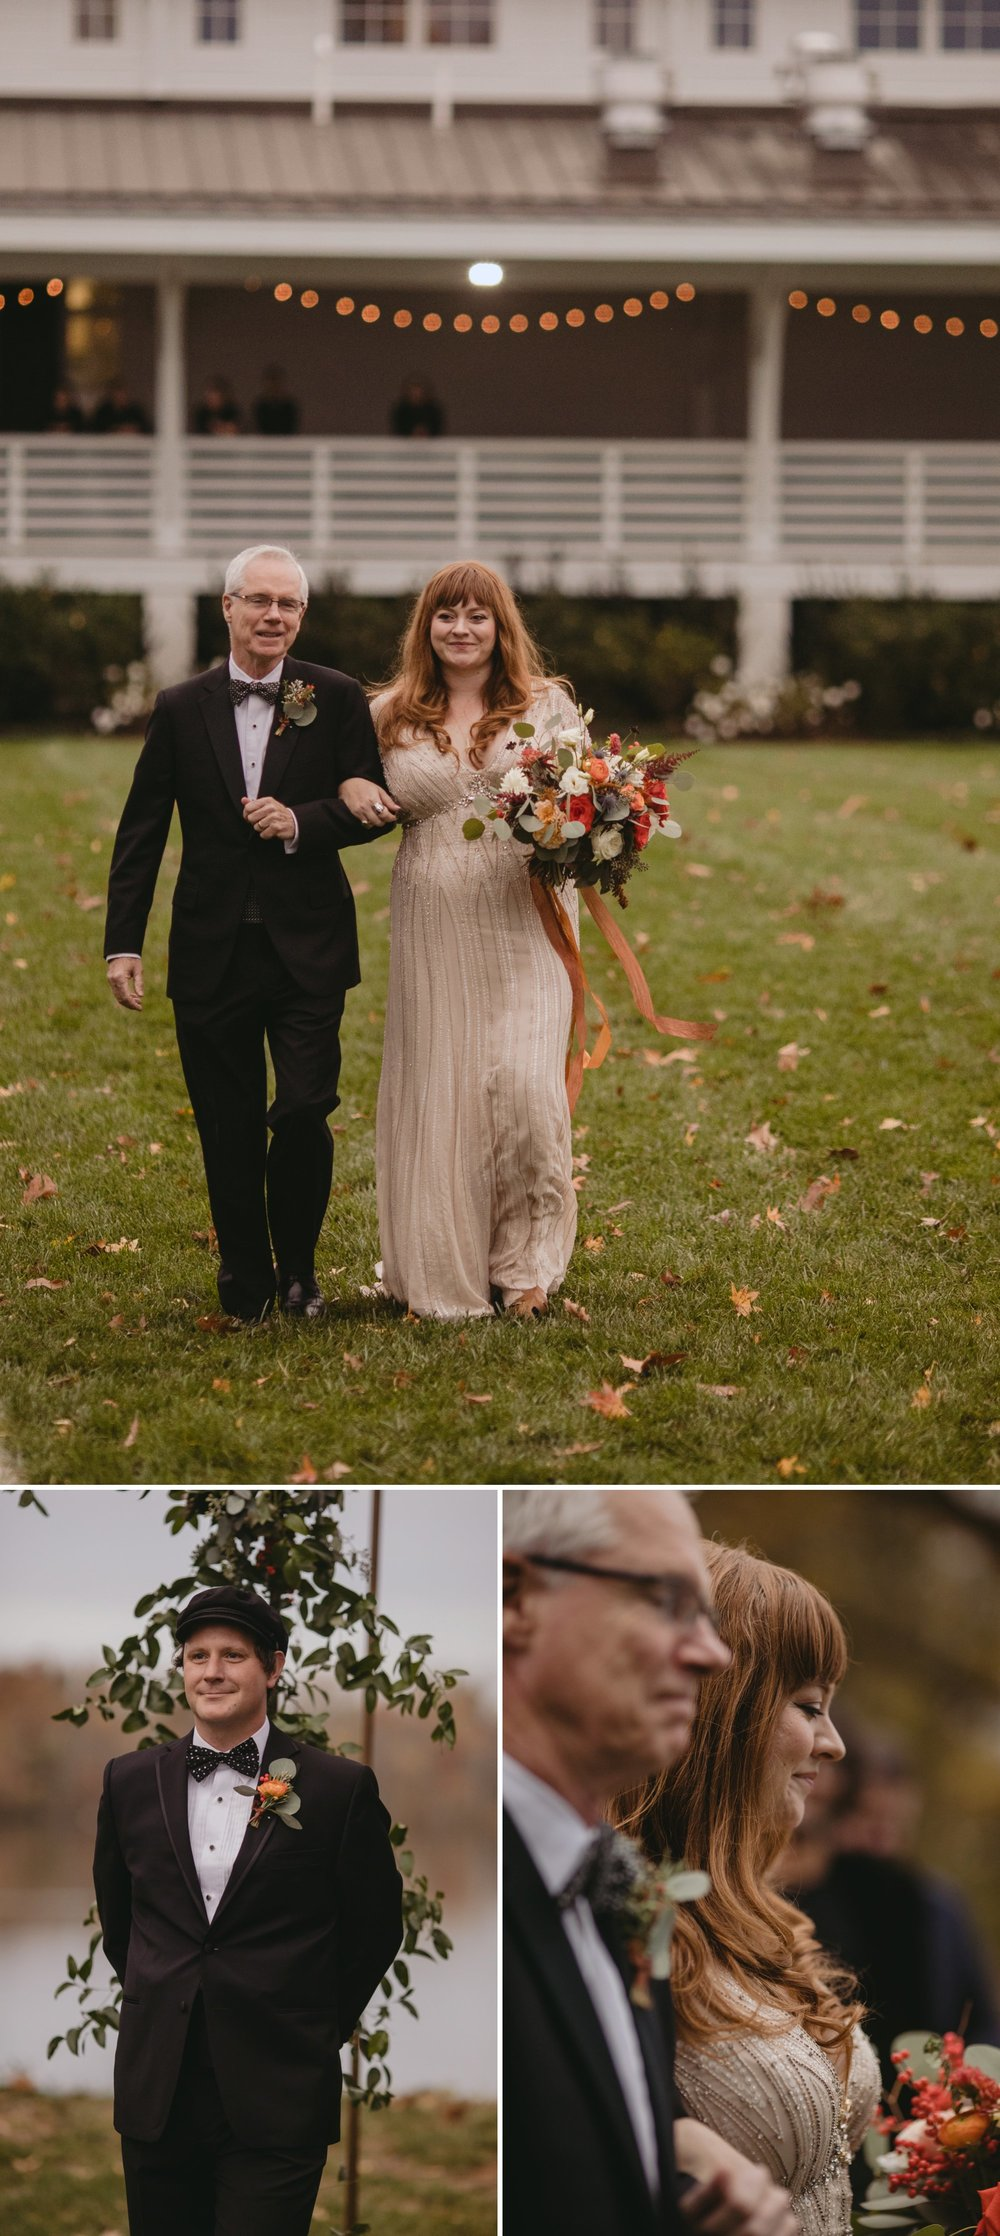 Autumn Richmond VA winery wedding at Upper Shirley Vineyards with lush garden florals and old Hollywood glamour bride down the aisle